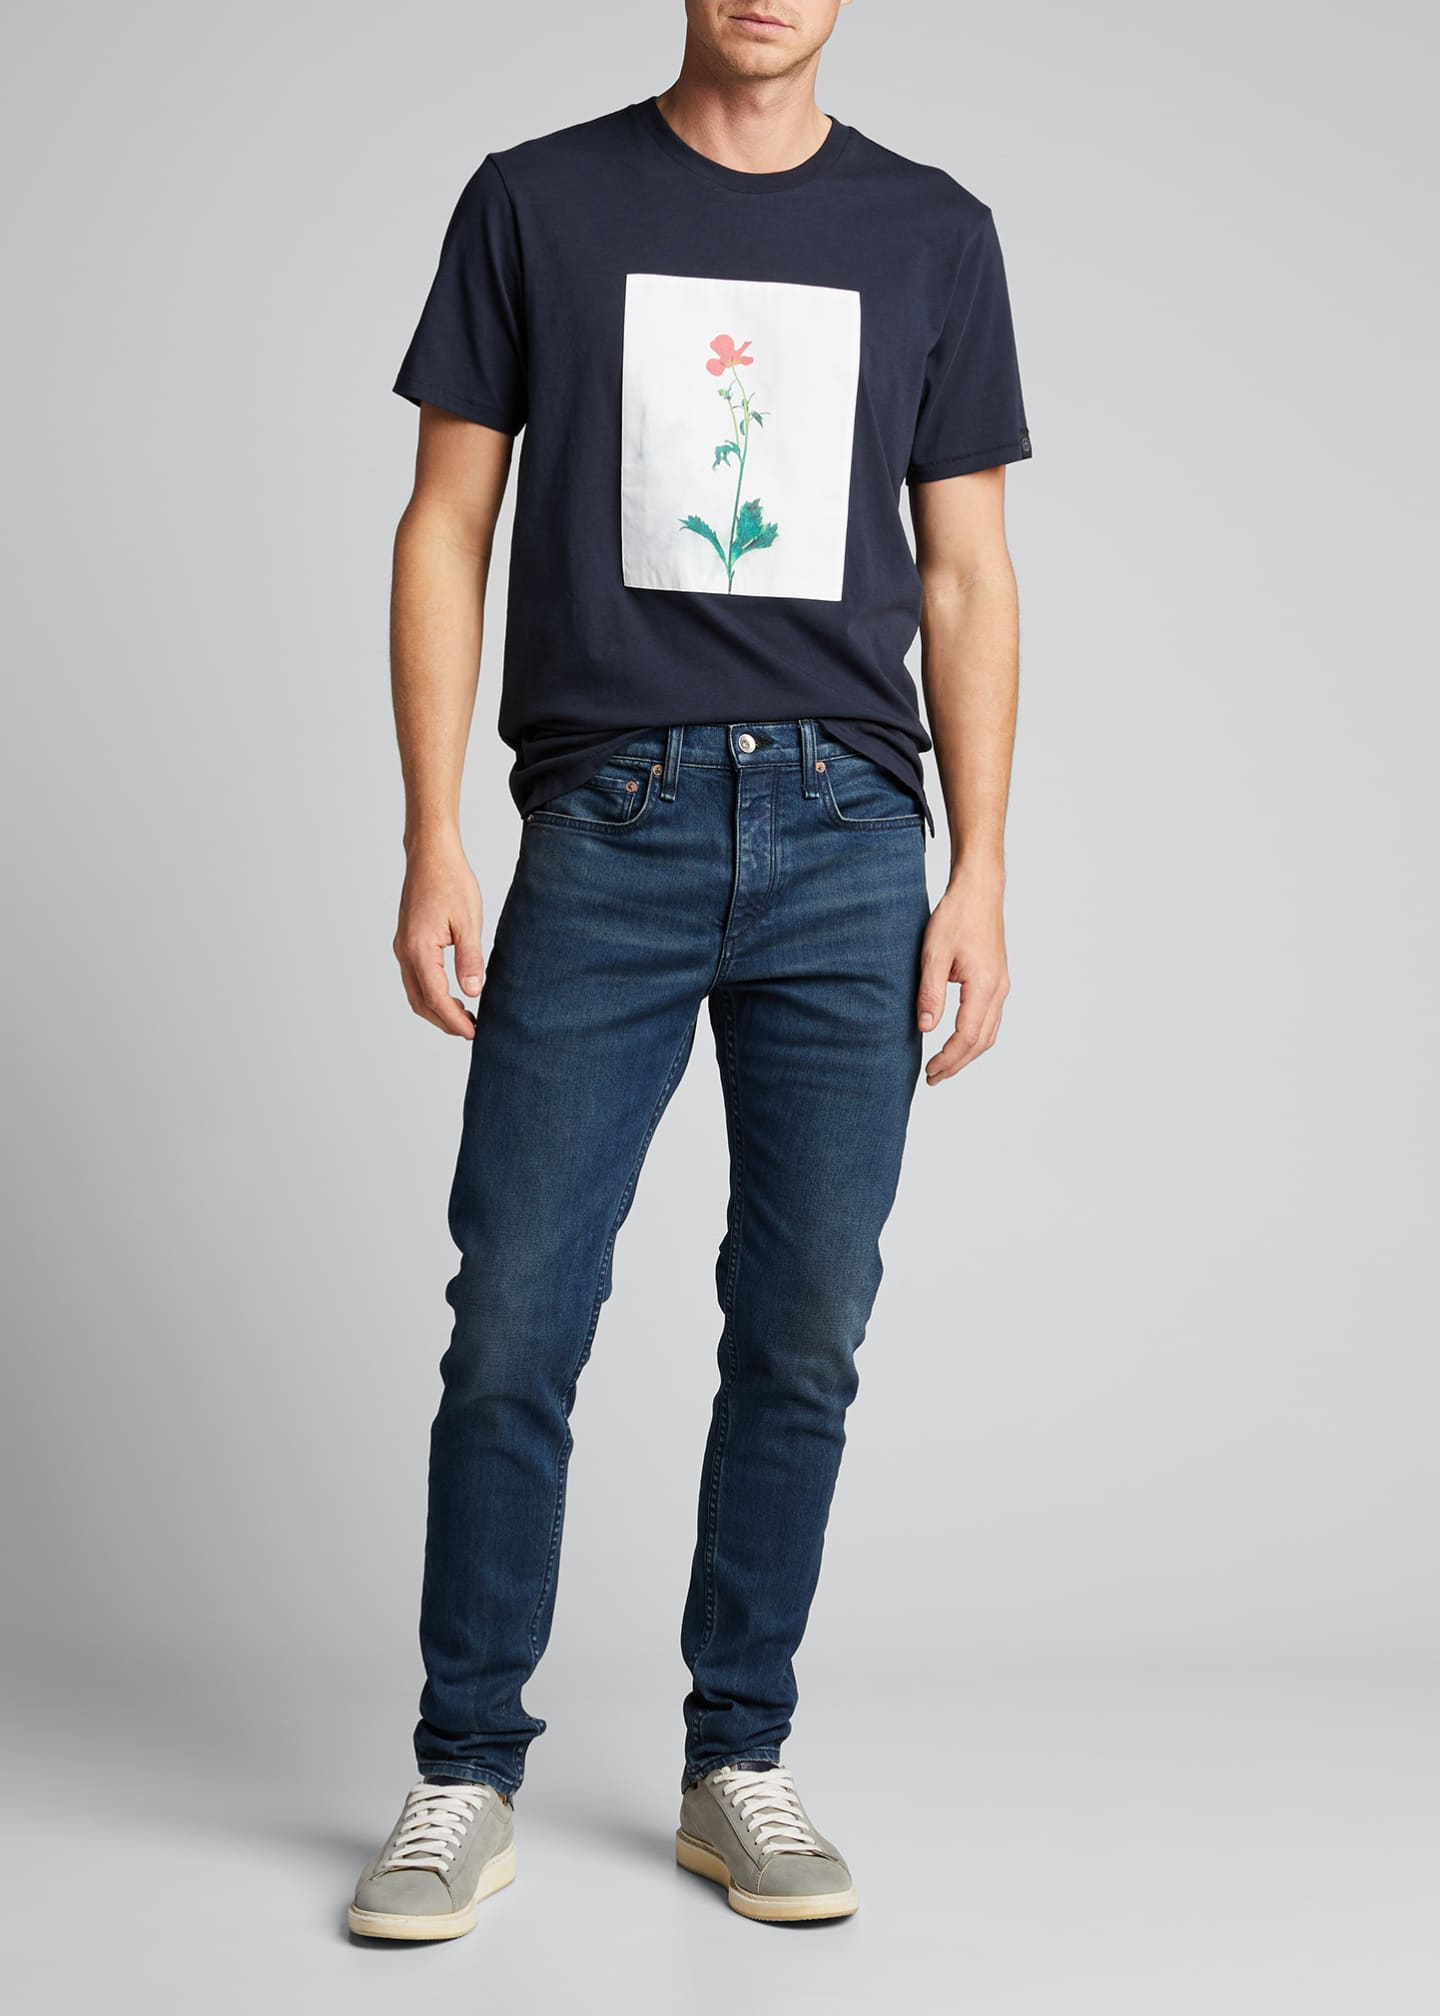 Image 1 of 5: Men's Flower Graphic T-Shirt